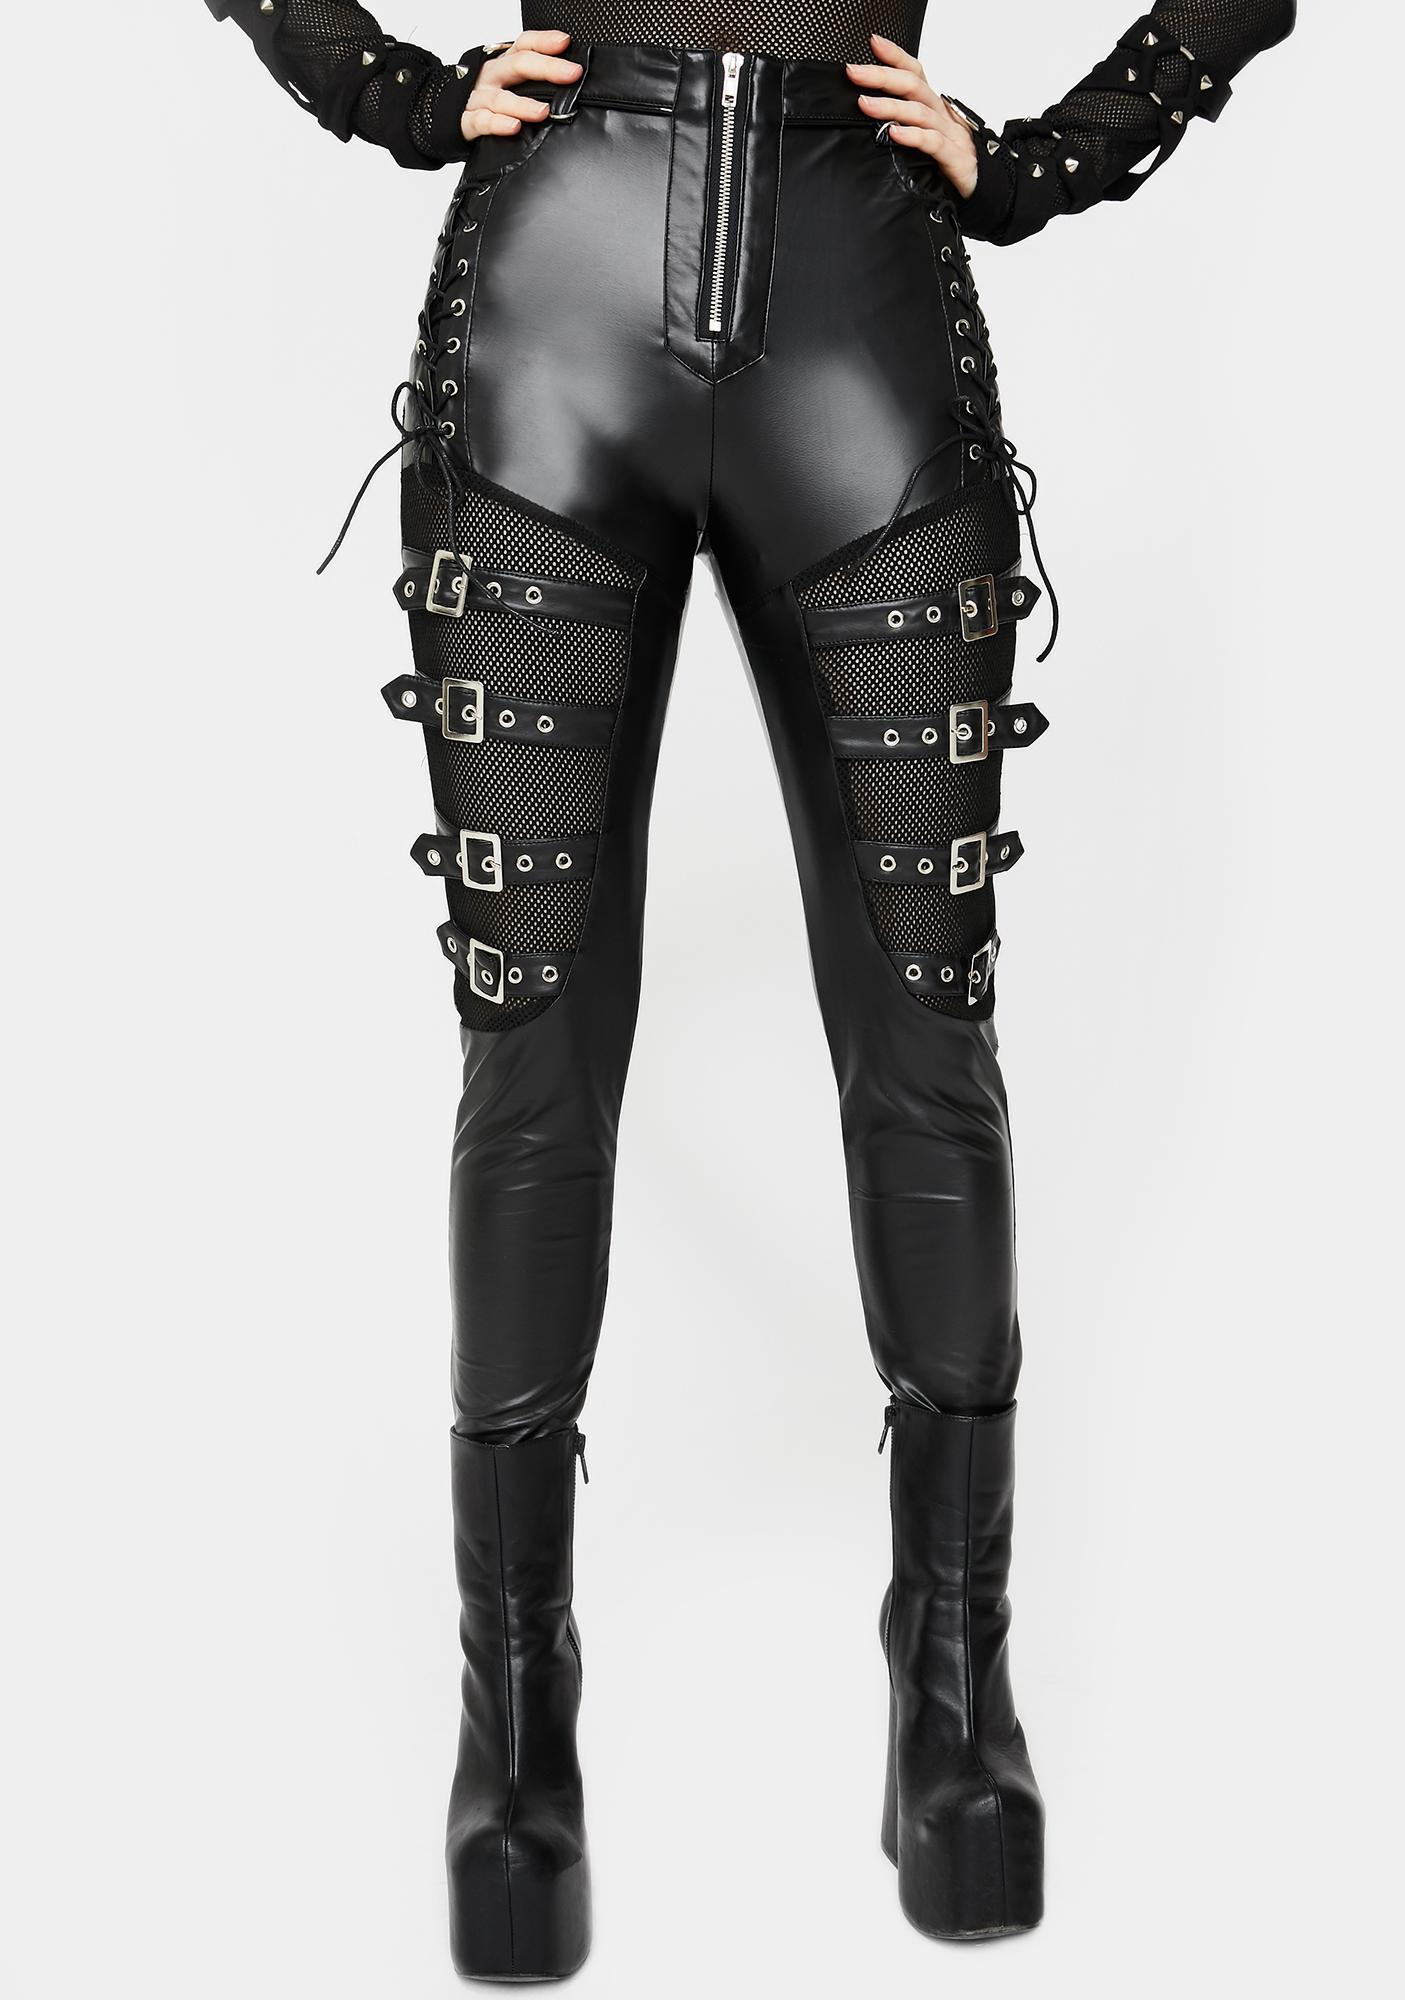 Buckle Lace Up Skinny Pants by Devil Fashion